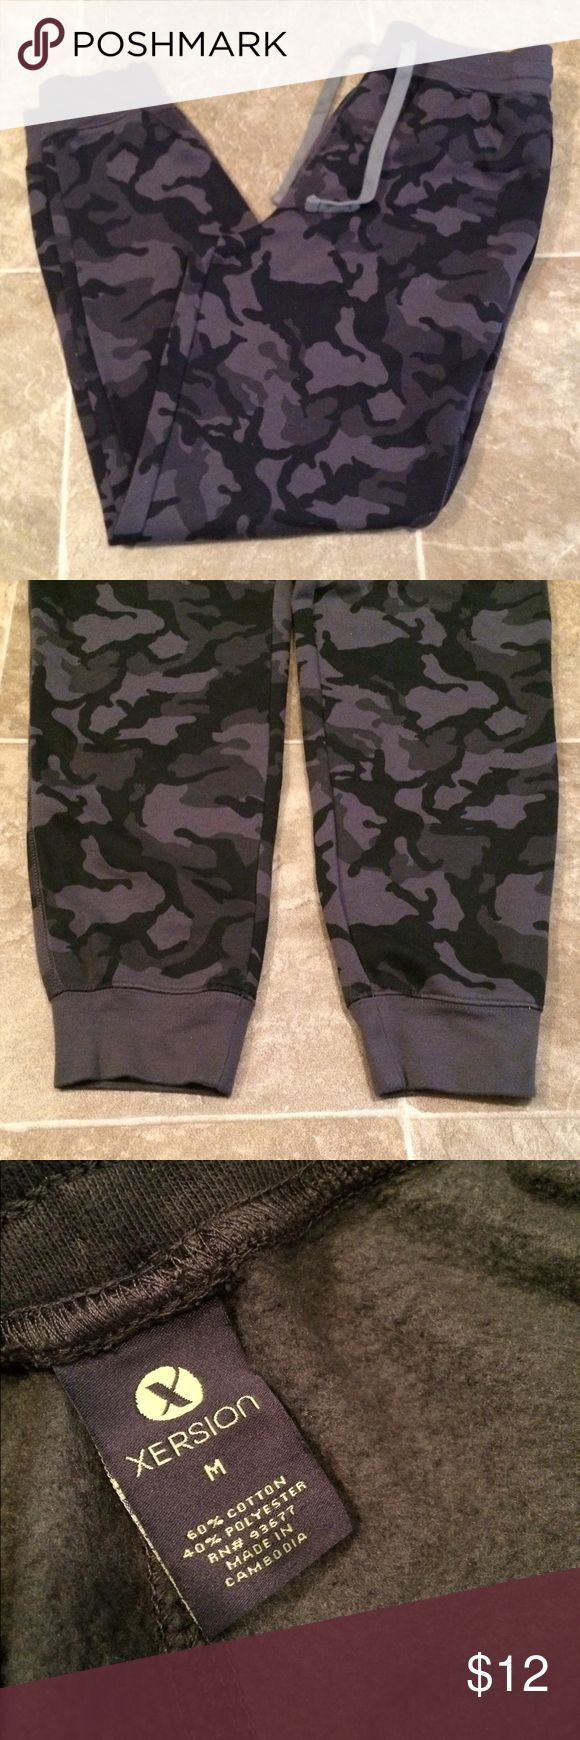 Xersion camouflage sweatpants Dark gray and black Xersion camouflage sweatpants. Size M  Smoke free and pet free home  Reasonable offers accepted  Bundle and save! Xersion Pants Sweatpants & Joggers